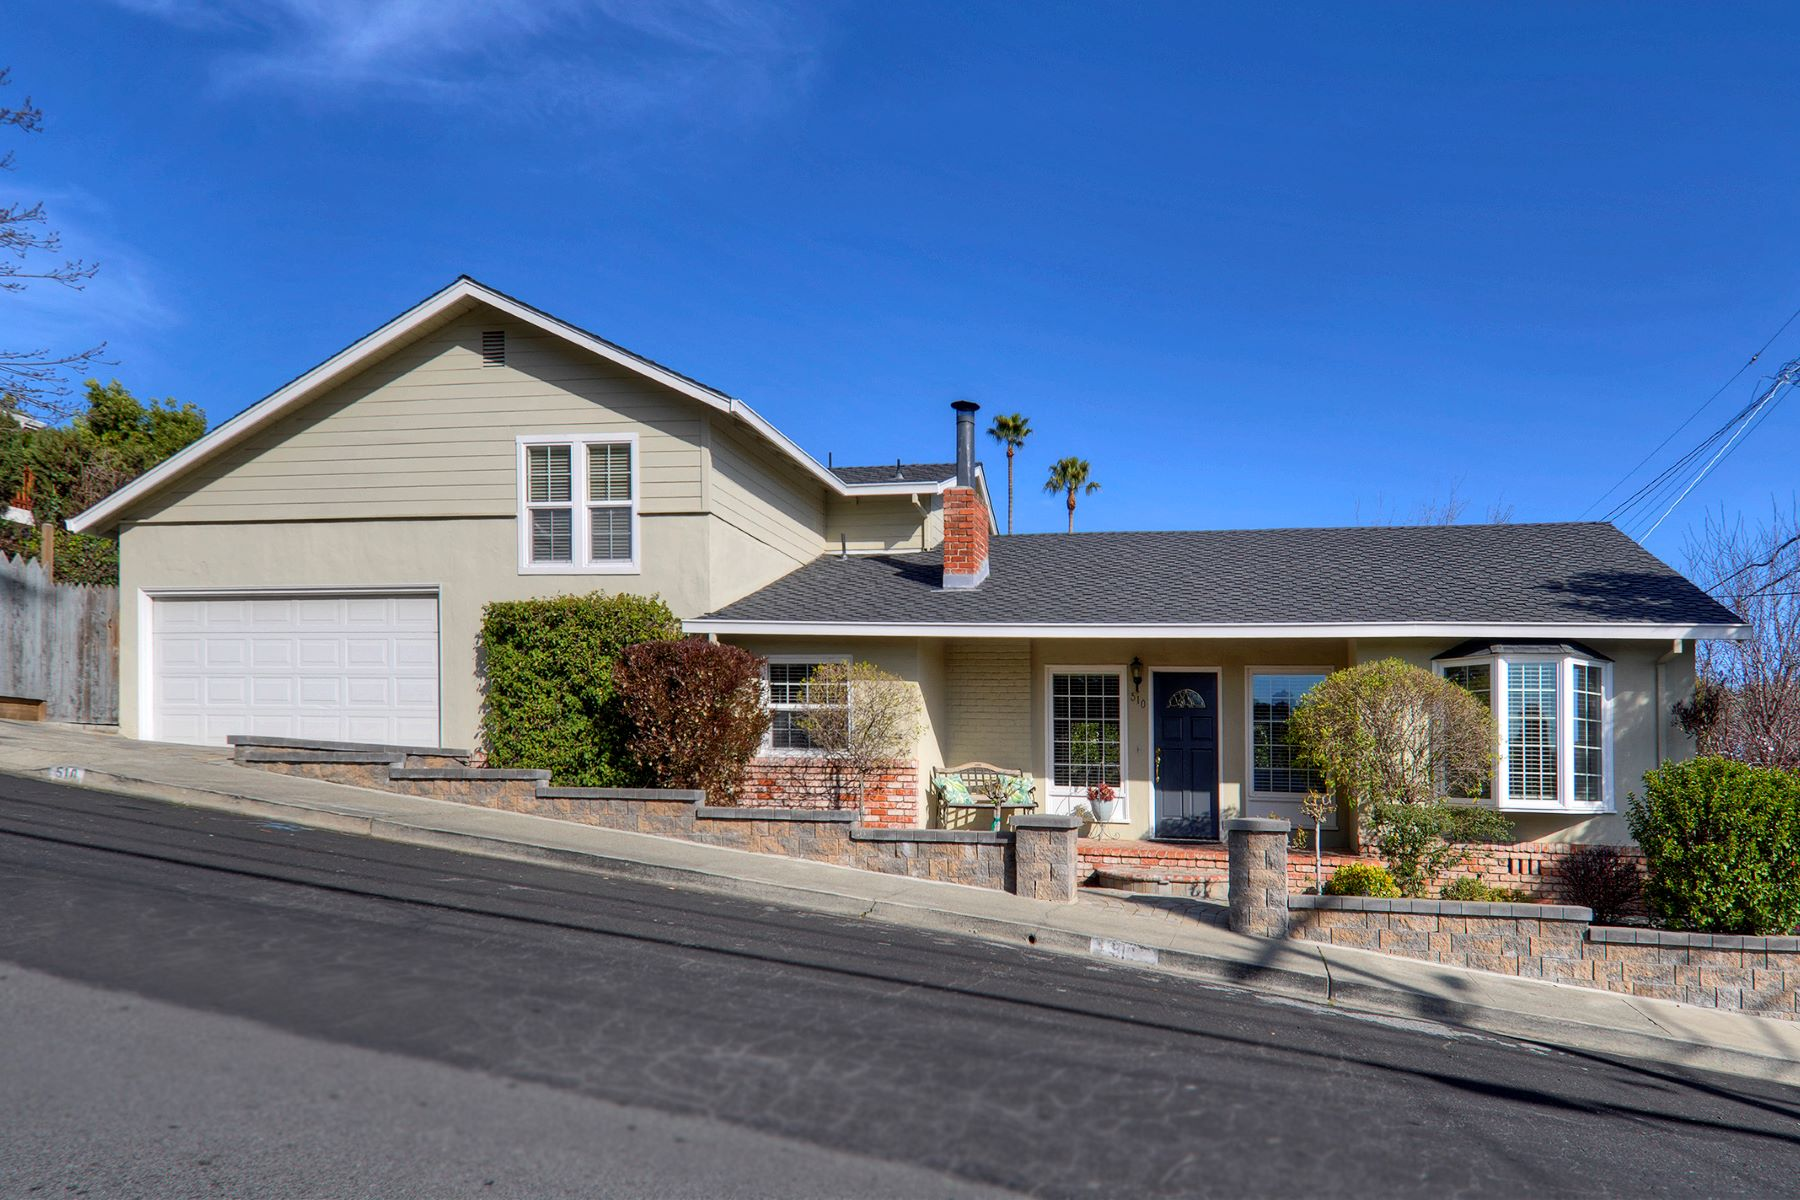 Single Family Homes for Sale at Warm and Welcoming Meets Style and Comfort 510 De Anza Avenue San Carlos, California 94070 United States